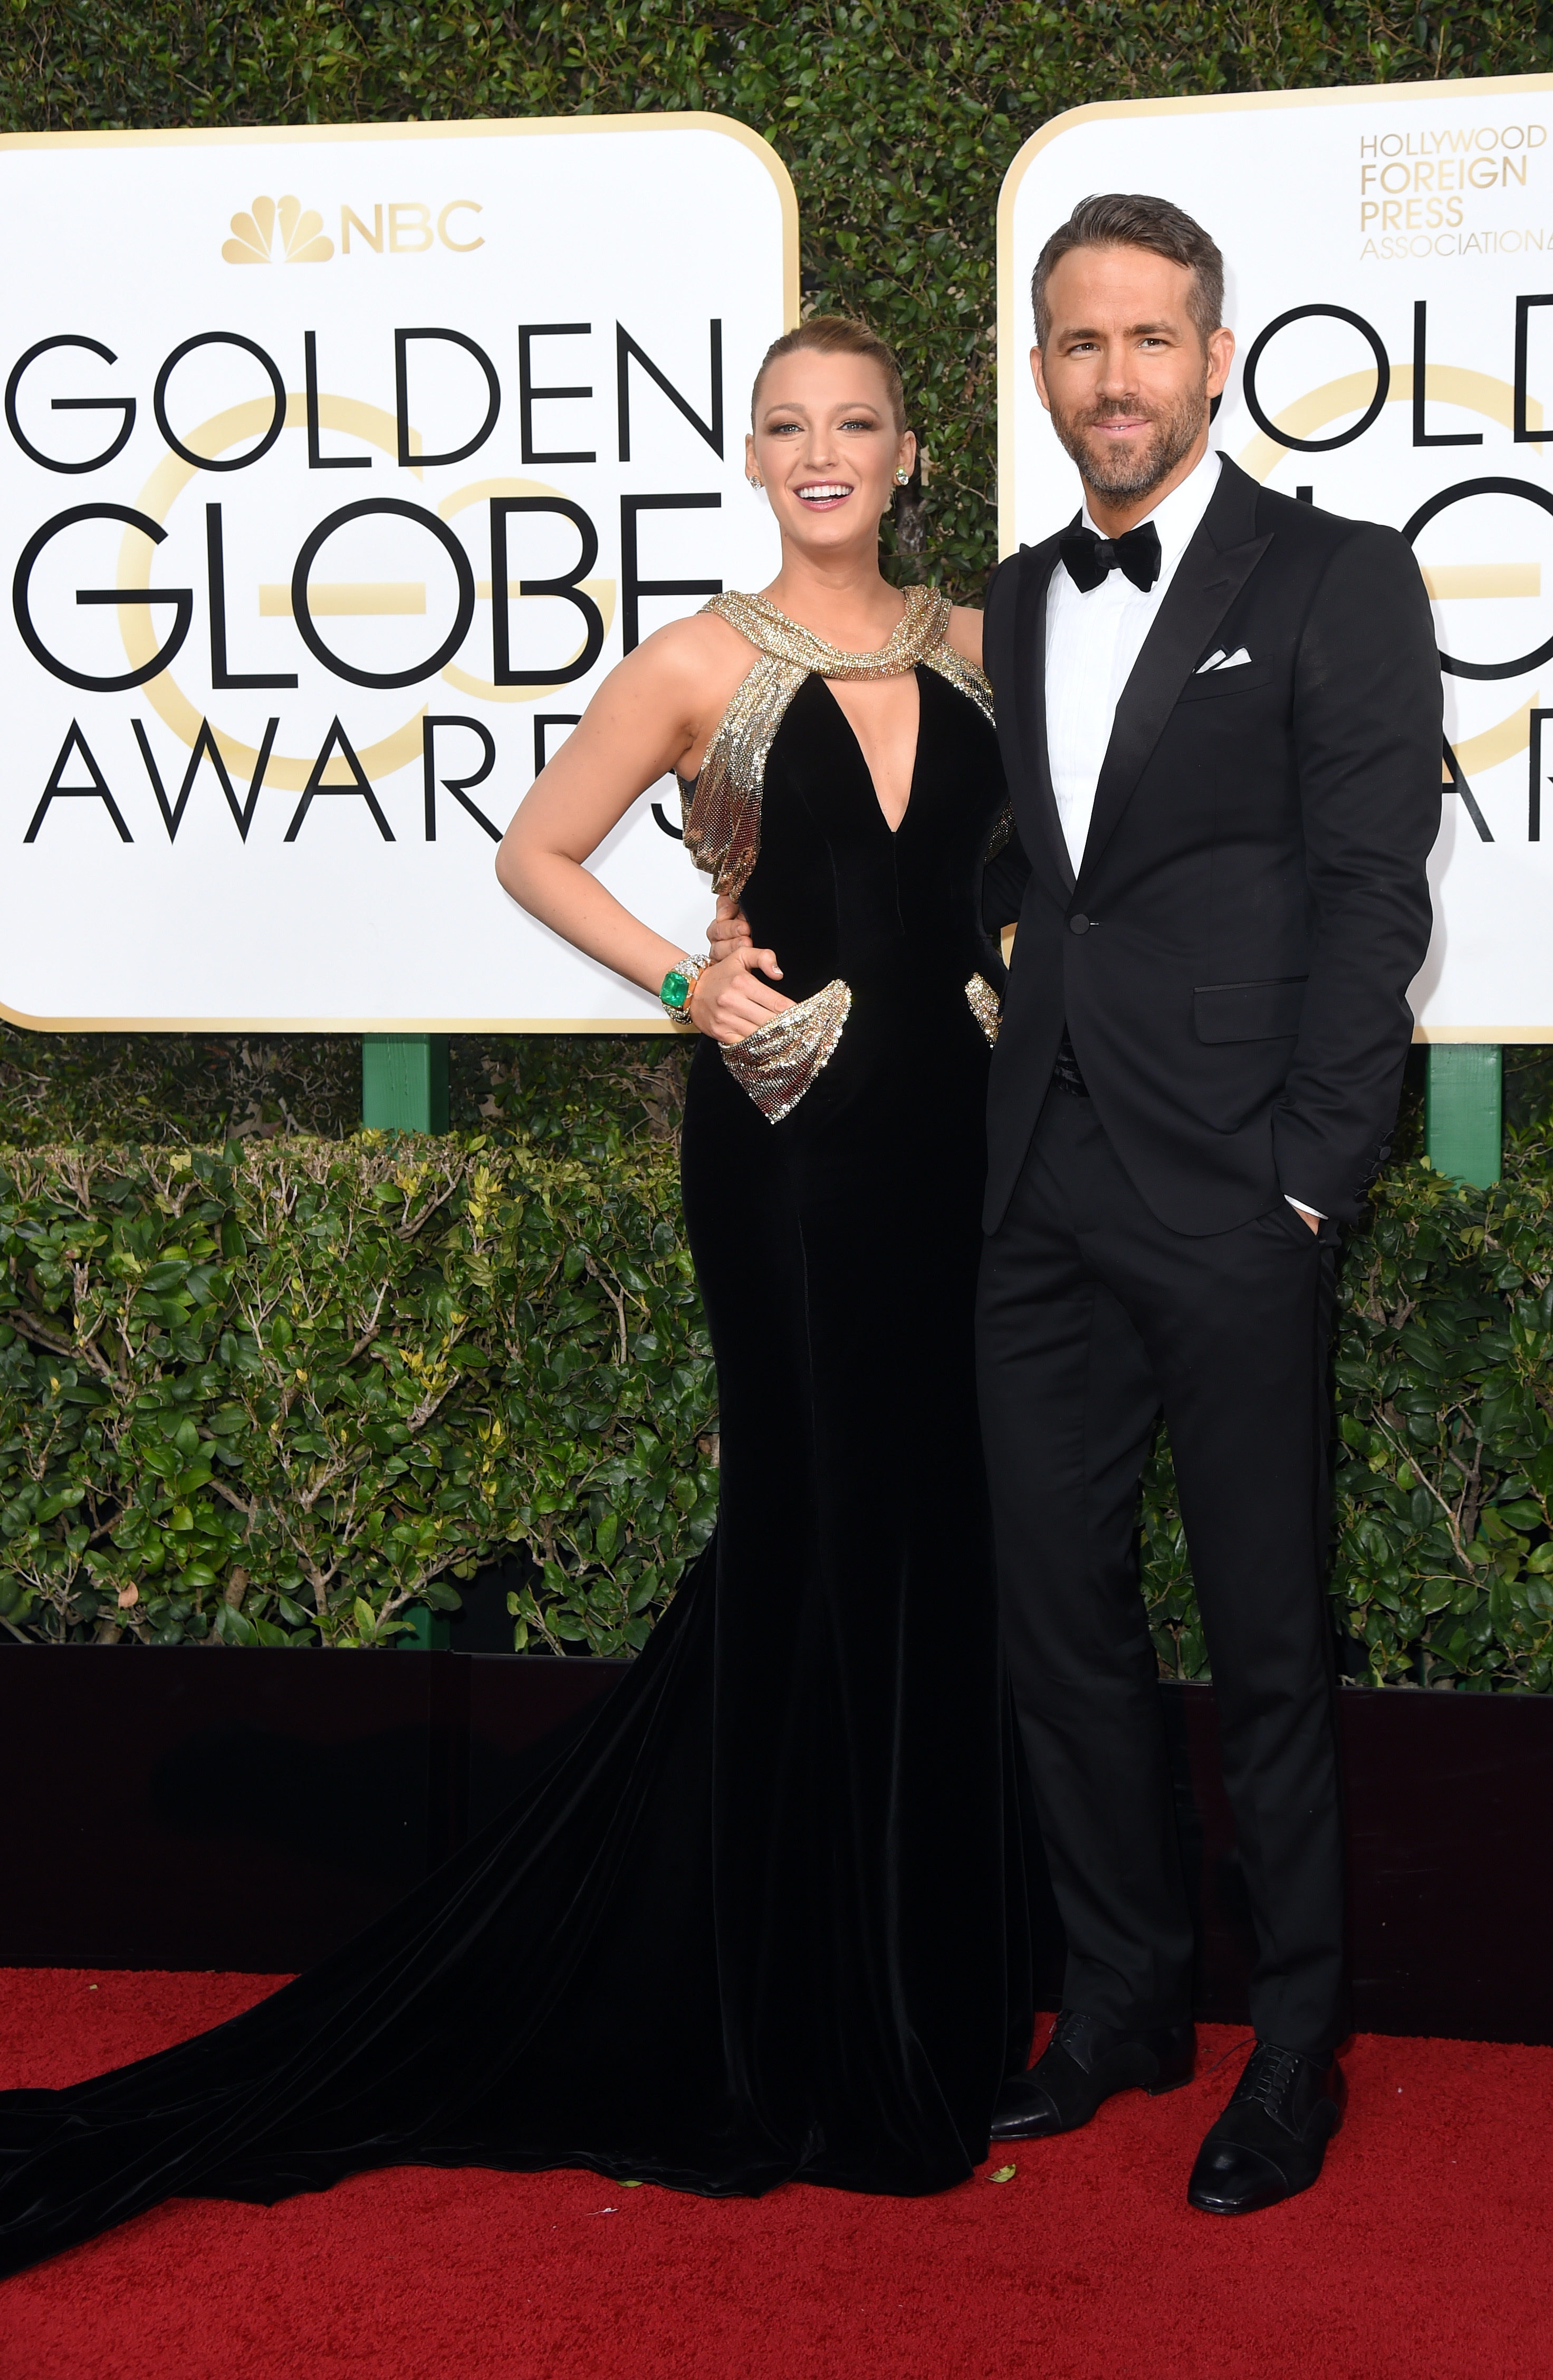 blake-lively-ryan-reynolds-golden-globes-red-carpet.jpg (2944×4512)